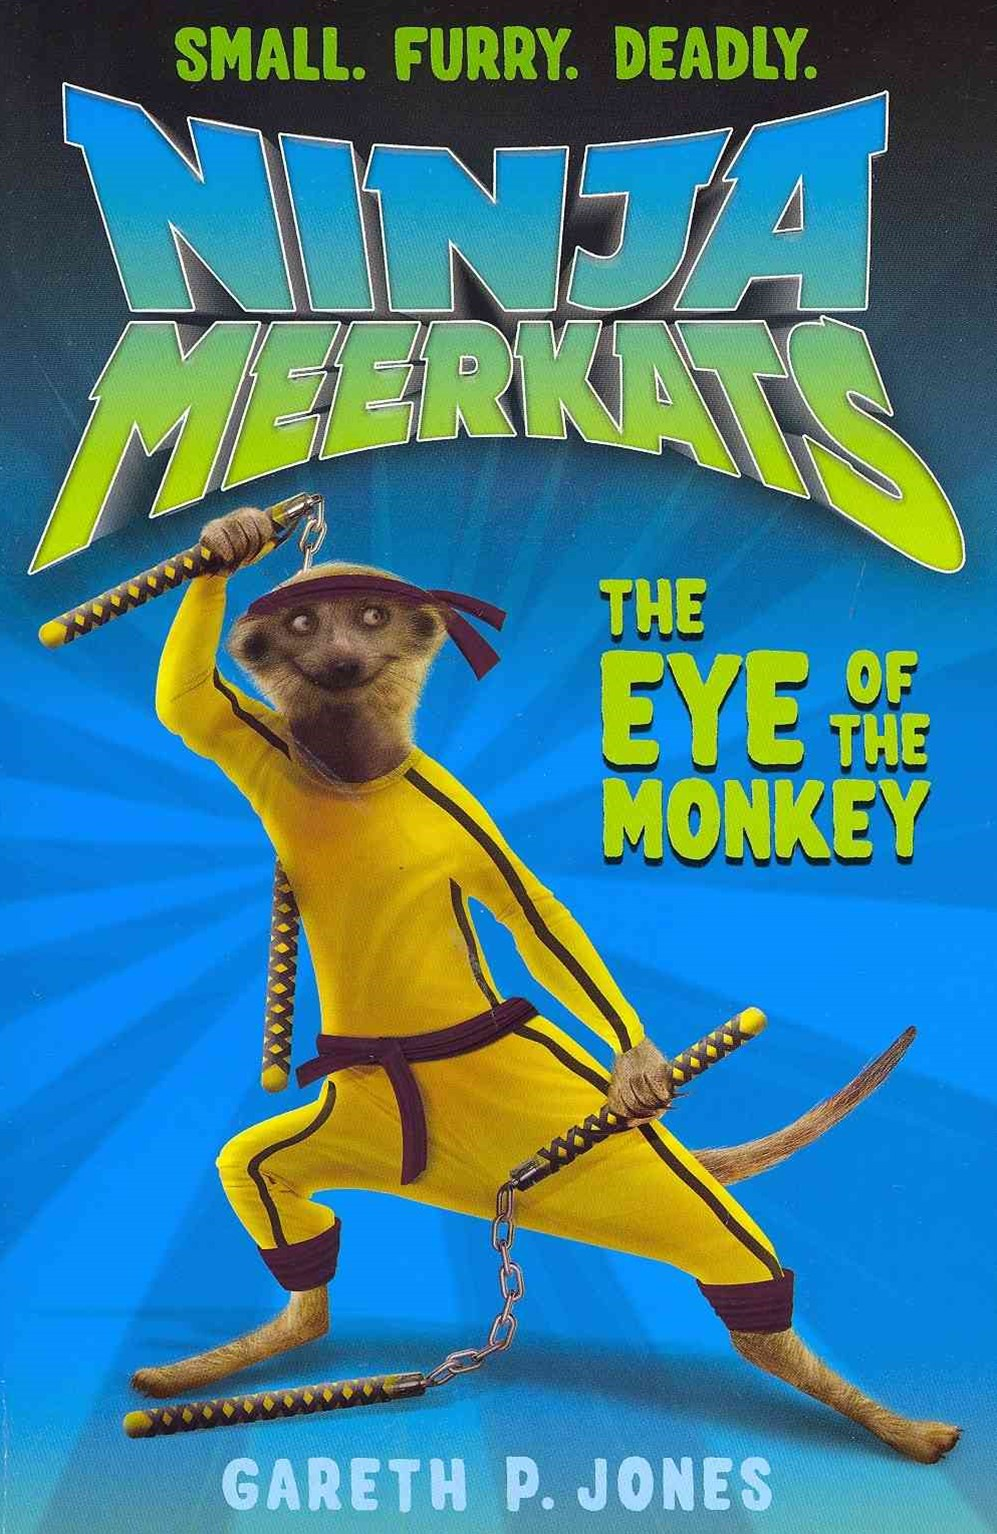 The Eye of the Monkey